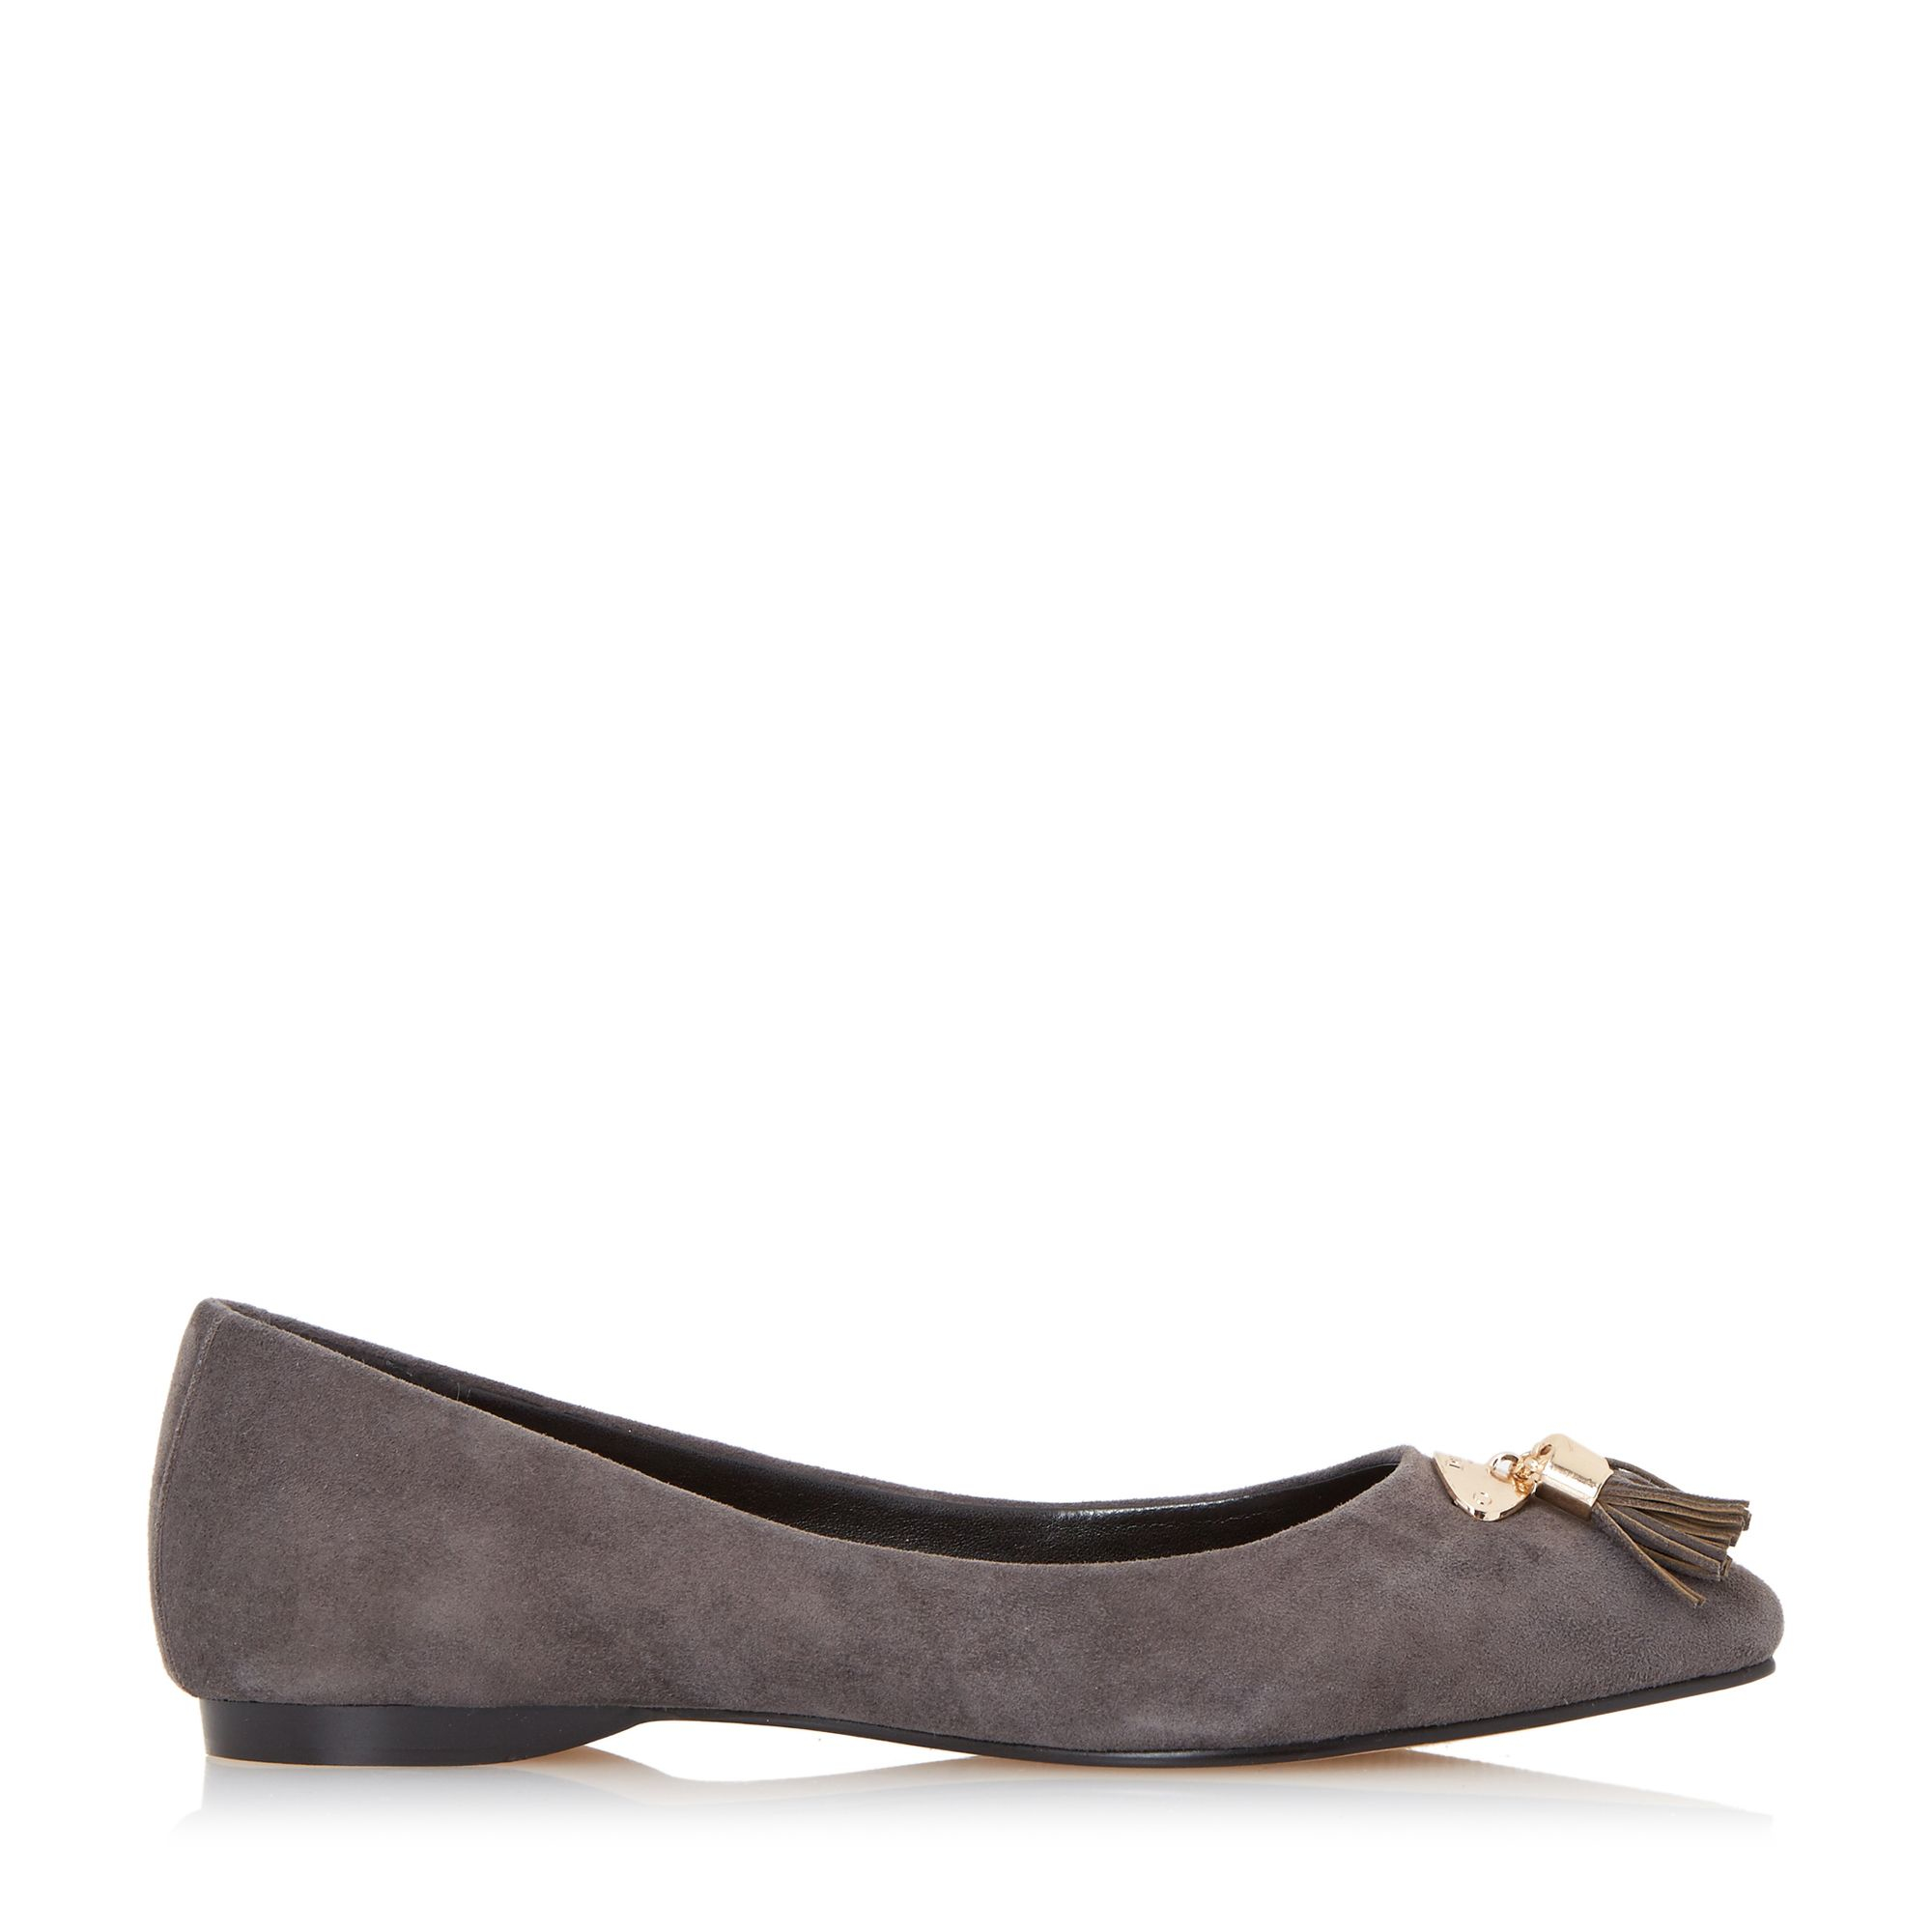 Dune Hewee Tassel Trim Pointed Toe Flat Shoes In Gray (Grey) | Lyst